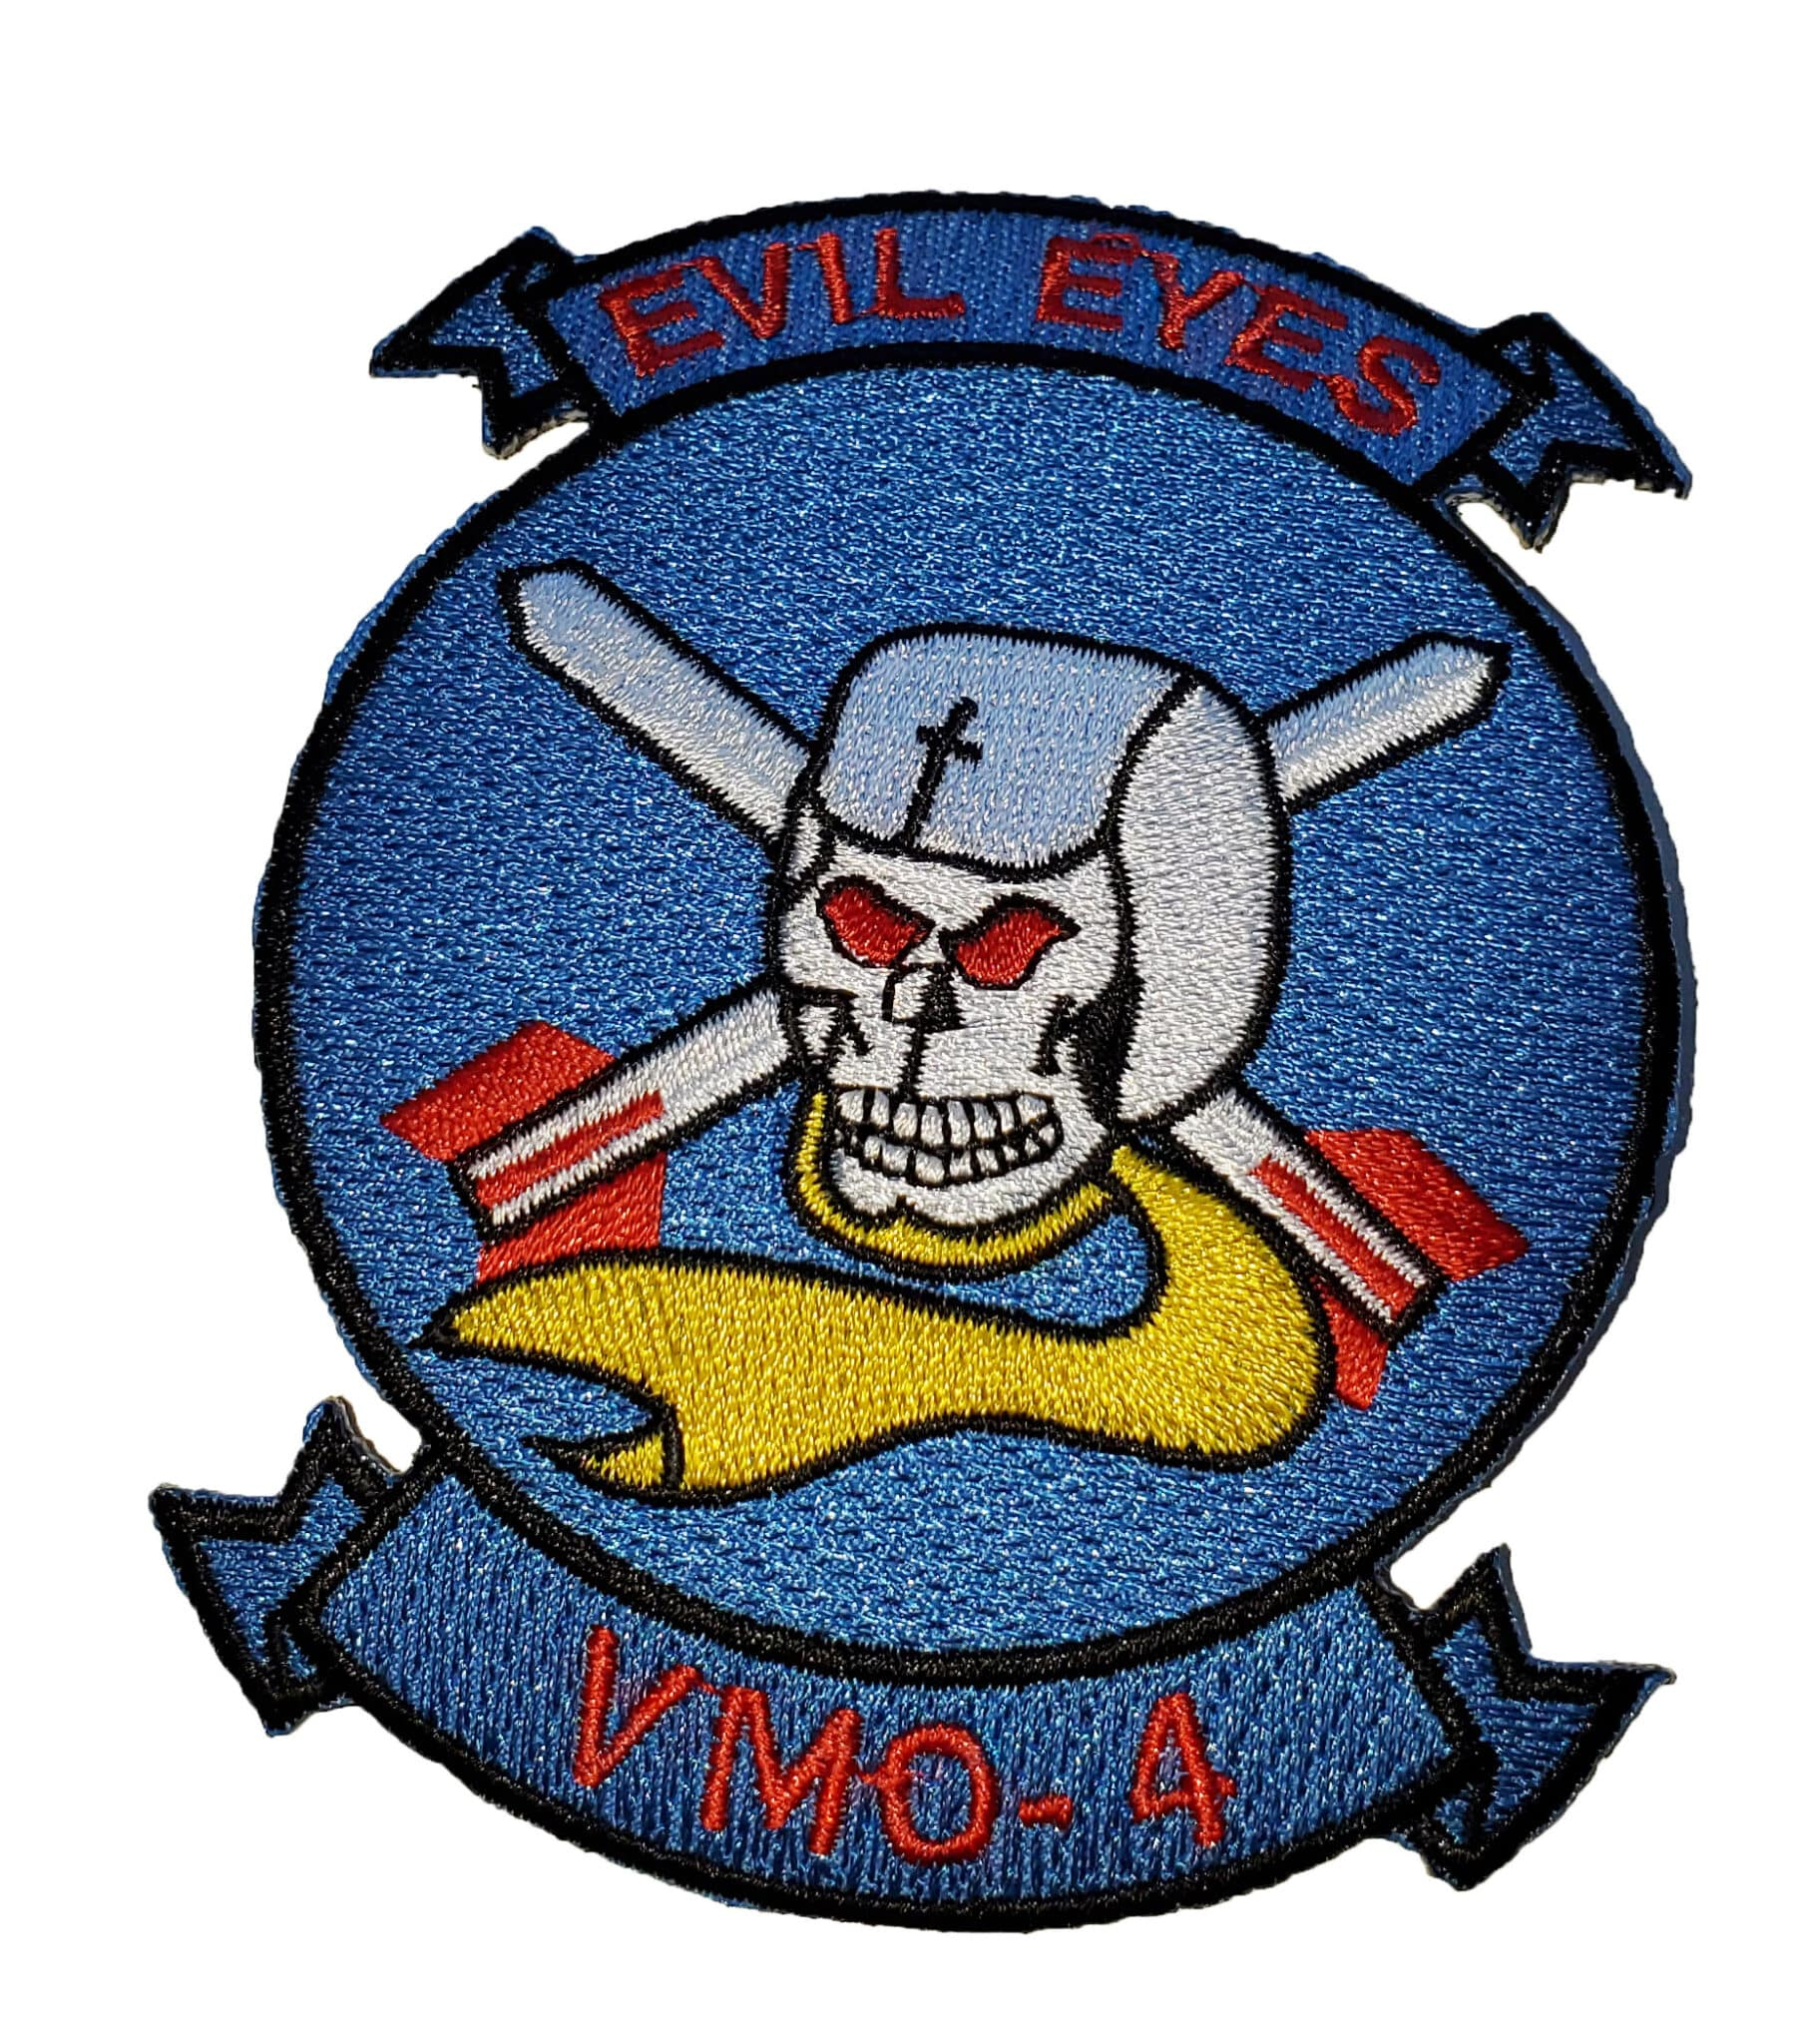 VMO-4 Evil Eyes Squadron Patch – Sew On